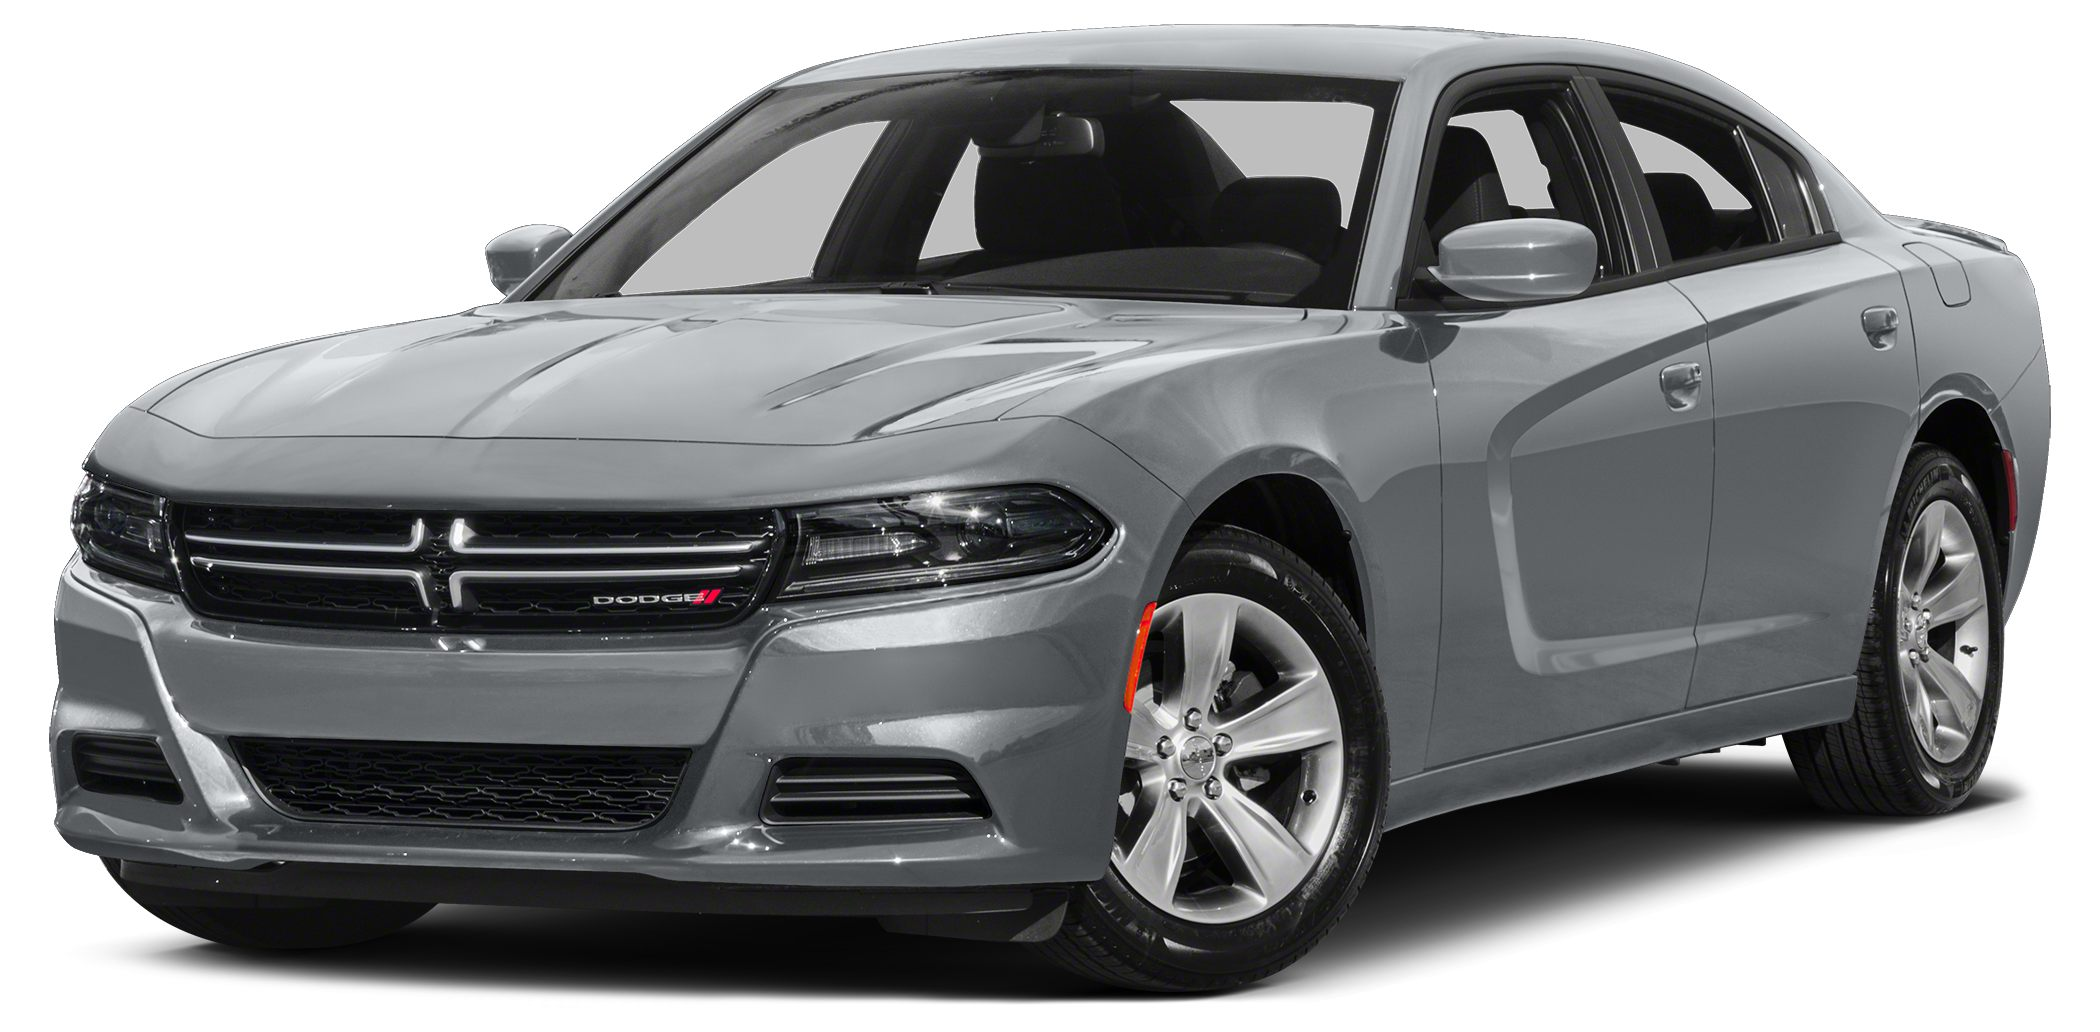 2015 Dodge Charger SE Miles 0Color Billet Silver Clearcoat Metallic Stock E15691 VIN 2C3CDXF